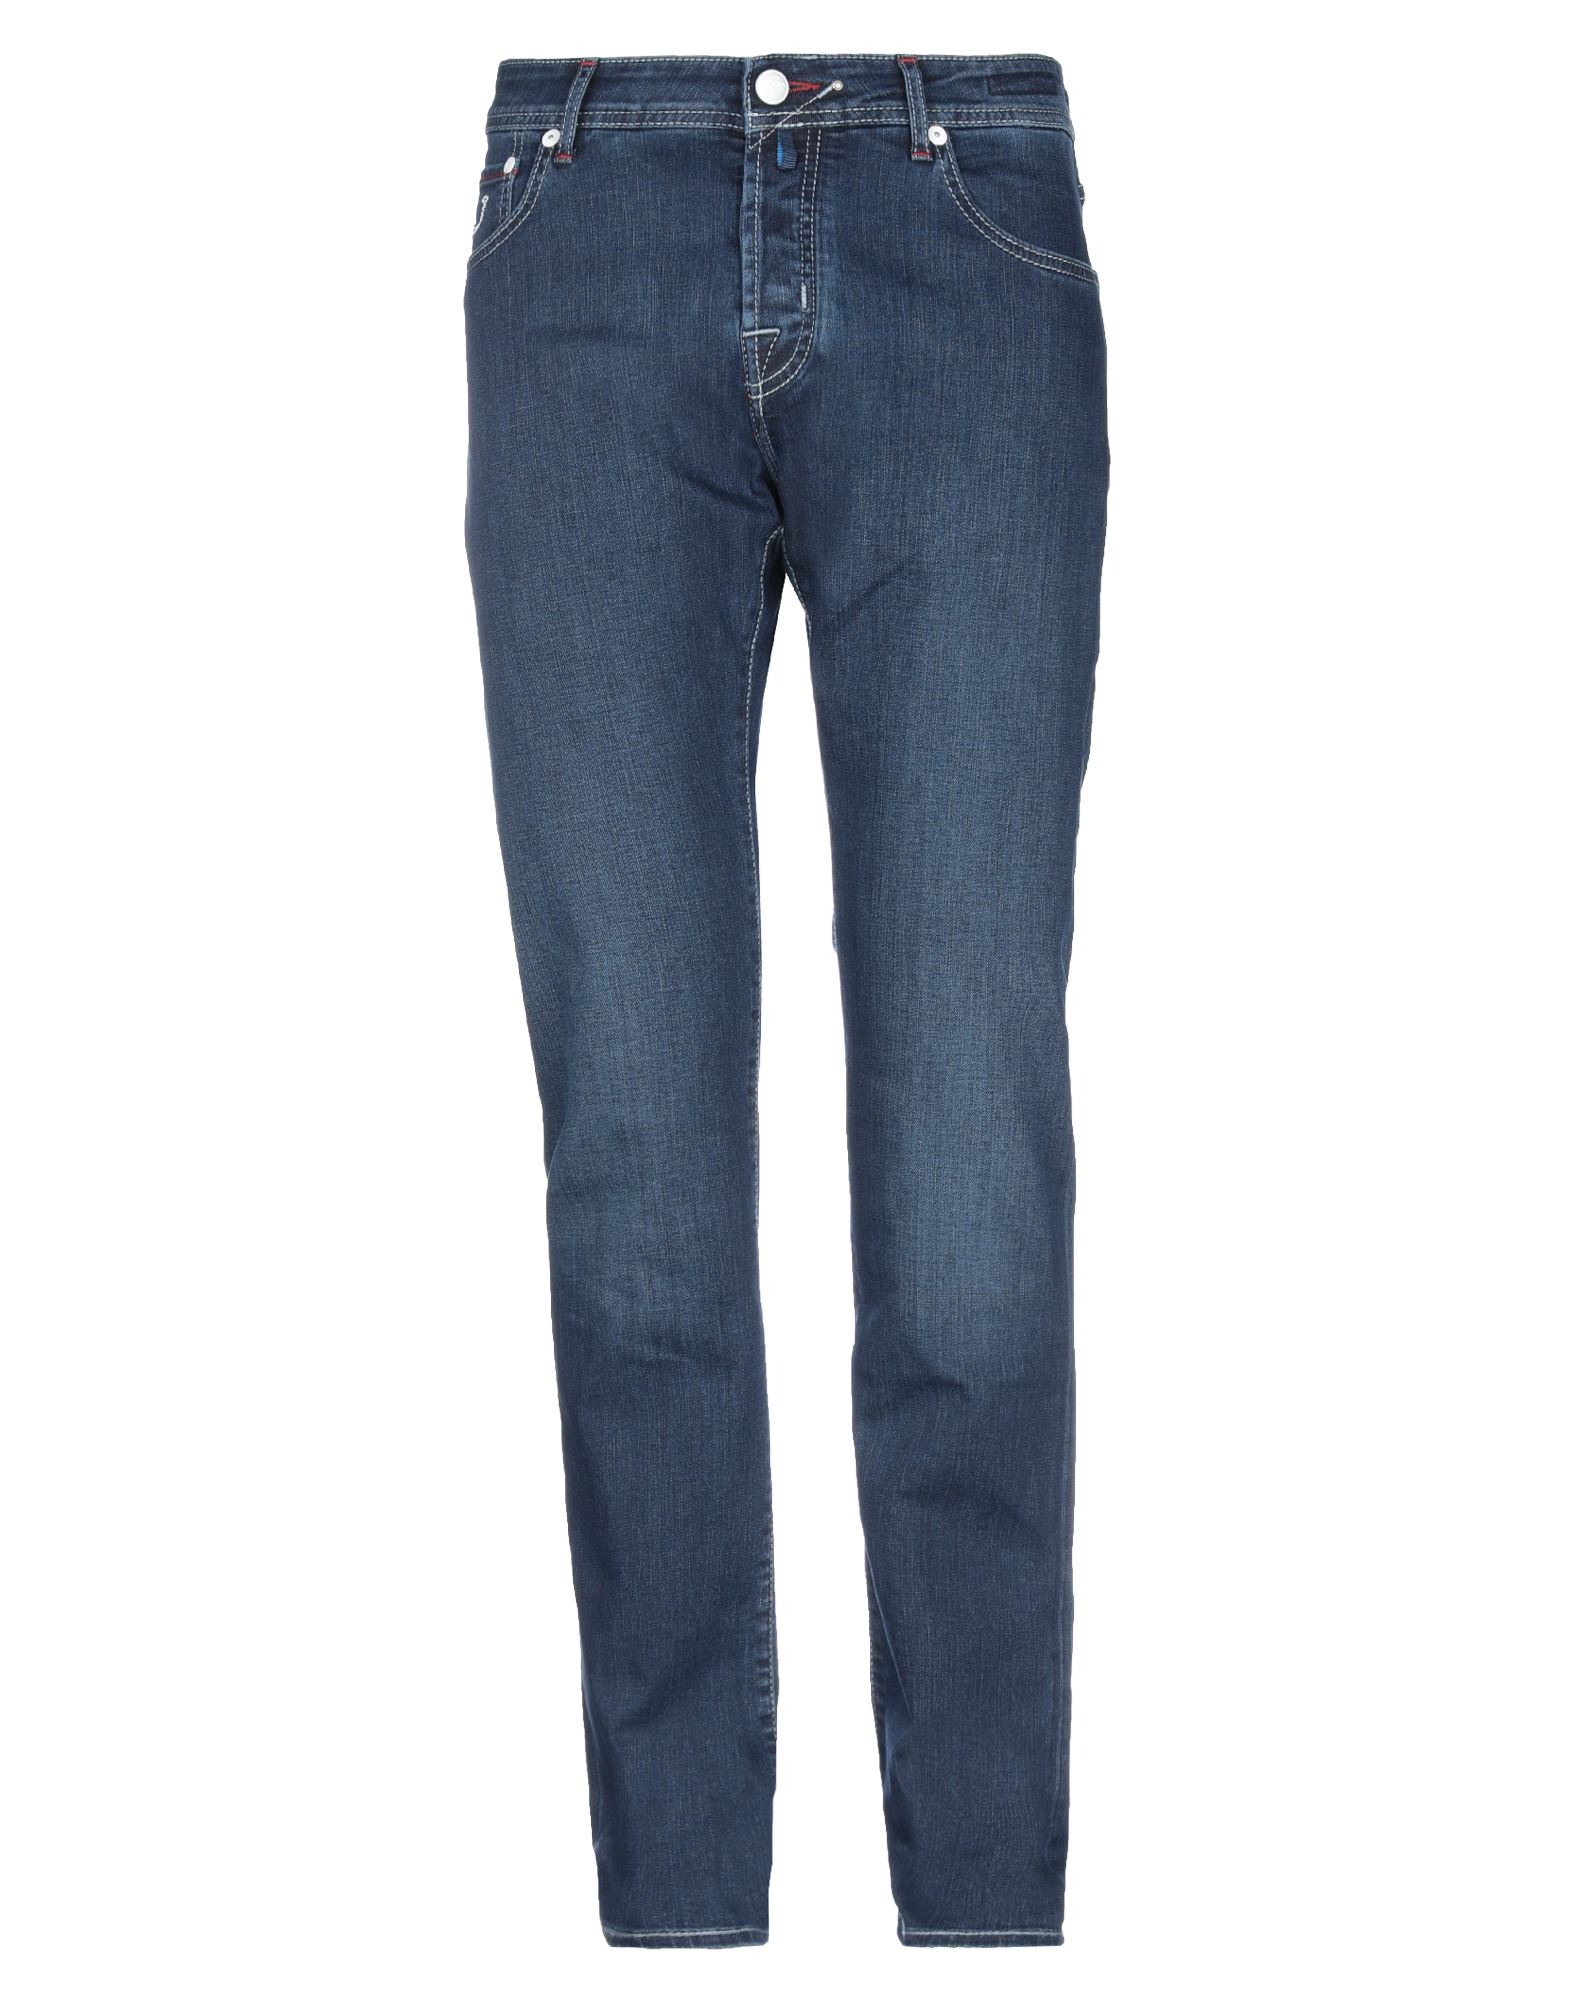 JACOB COHЁN Denim pants - Item 42819184